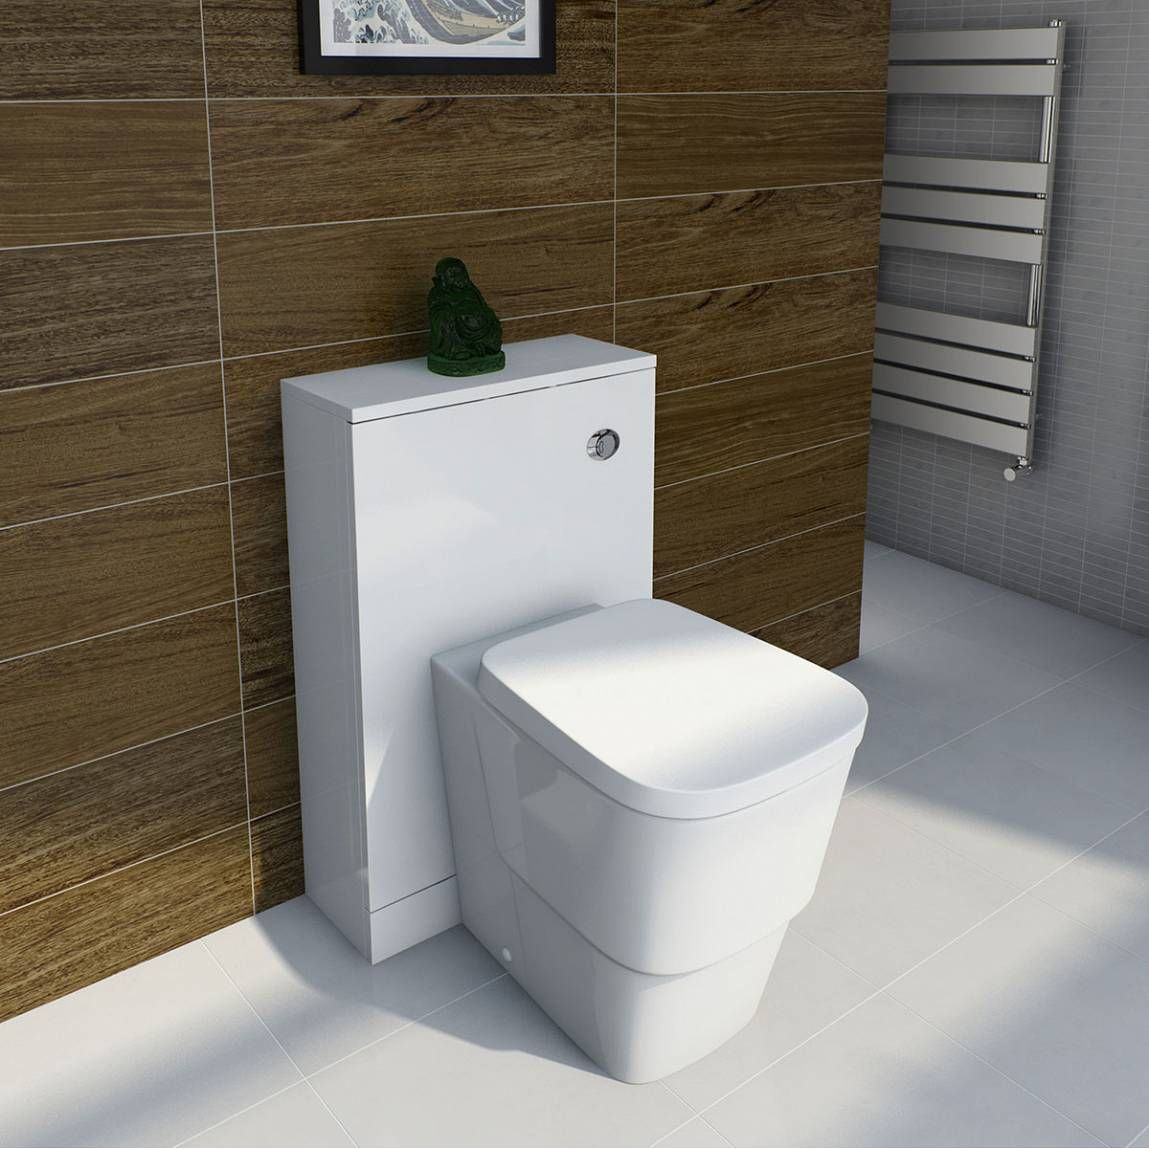 If you are looking for bathroom furniture 37